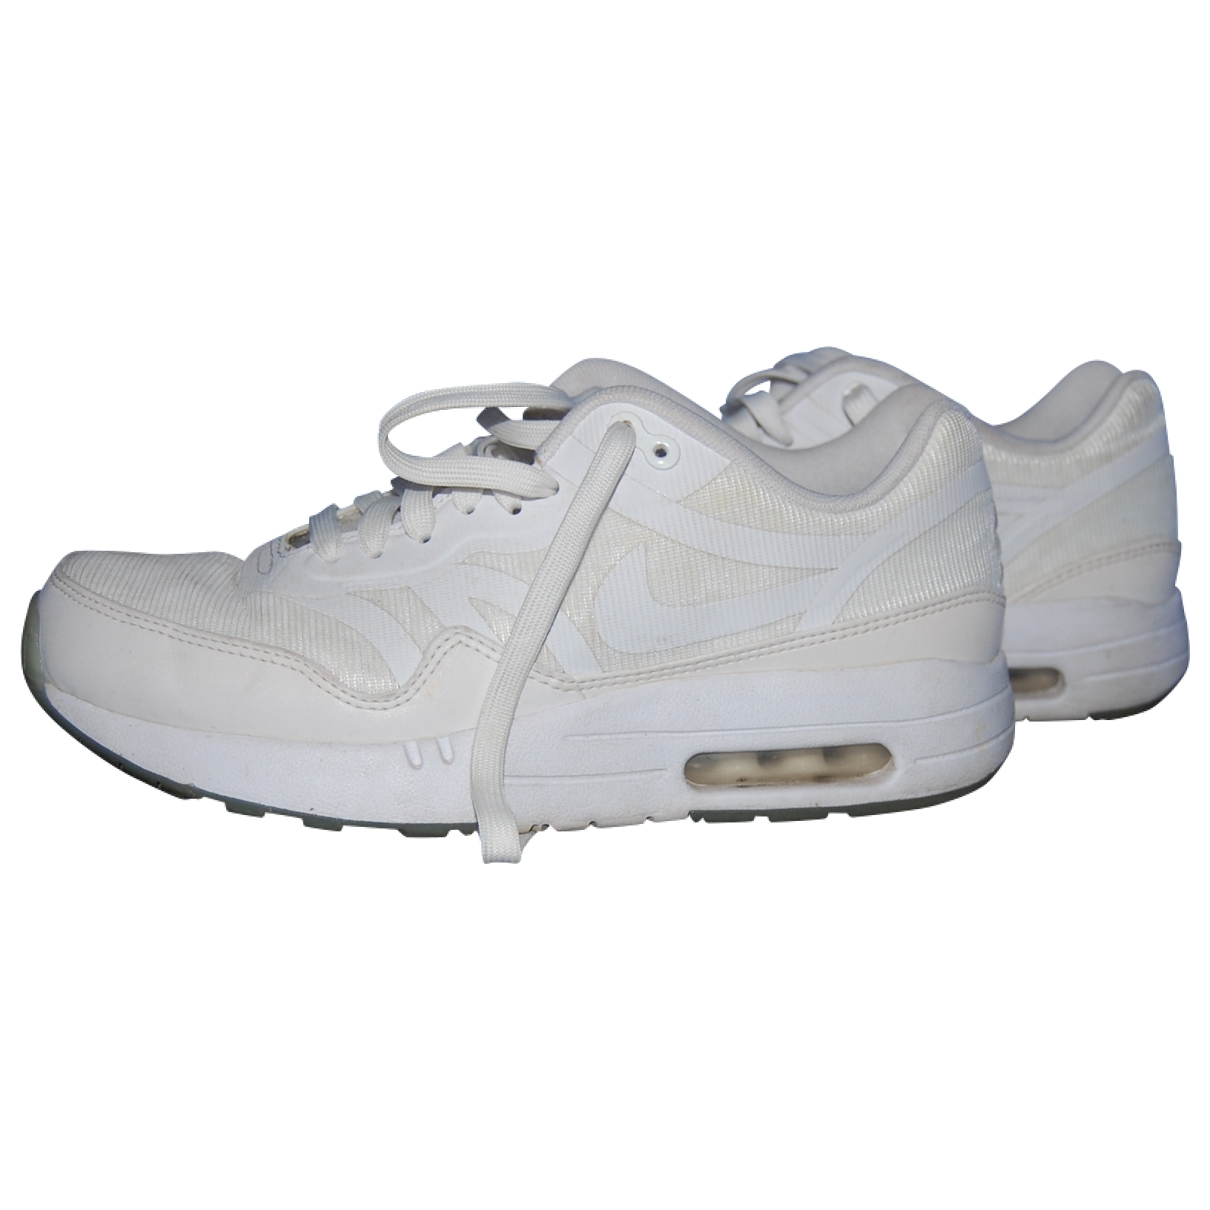 Nike Air Max 1 White Cloth Trainers for Women 7.5 US